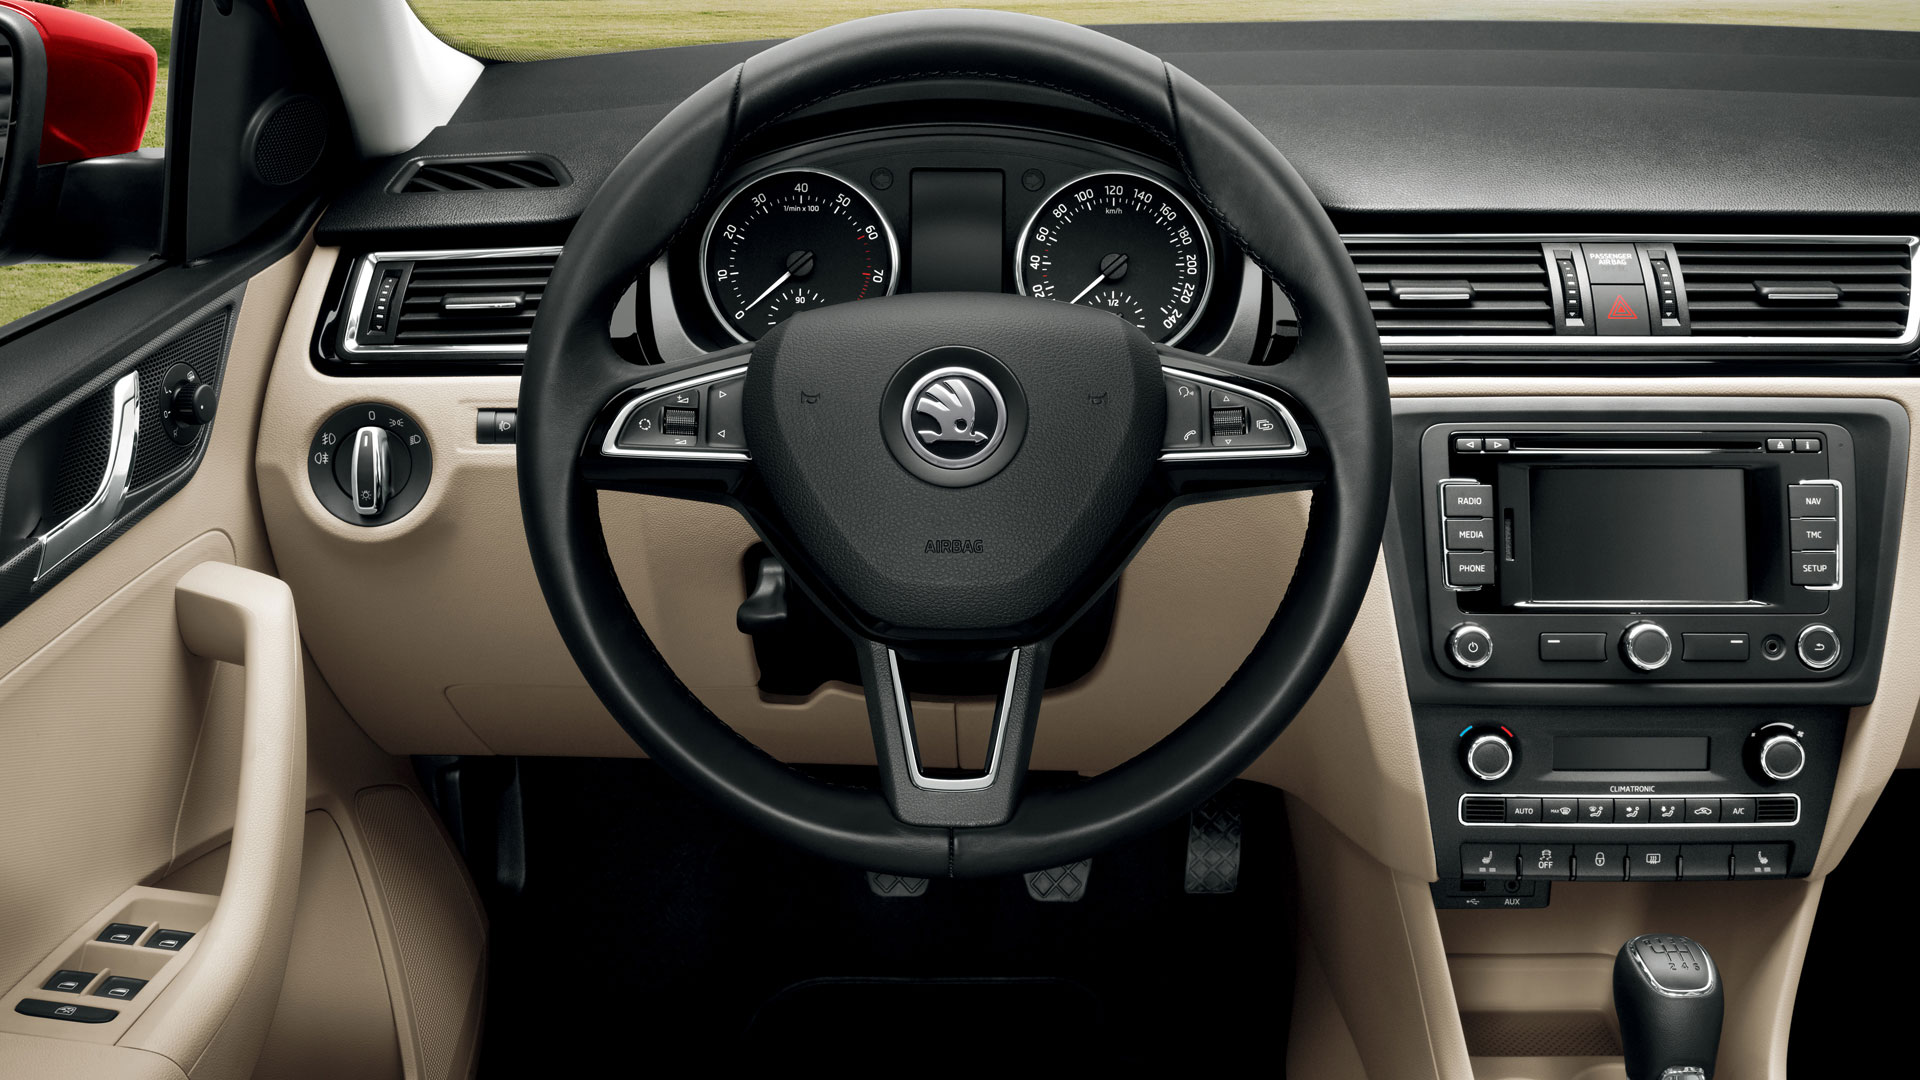 rapid-spaceback-i02-steering-wheel-01